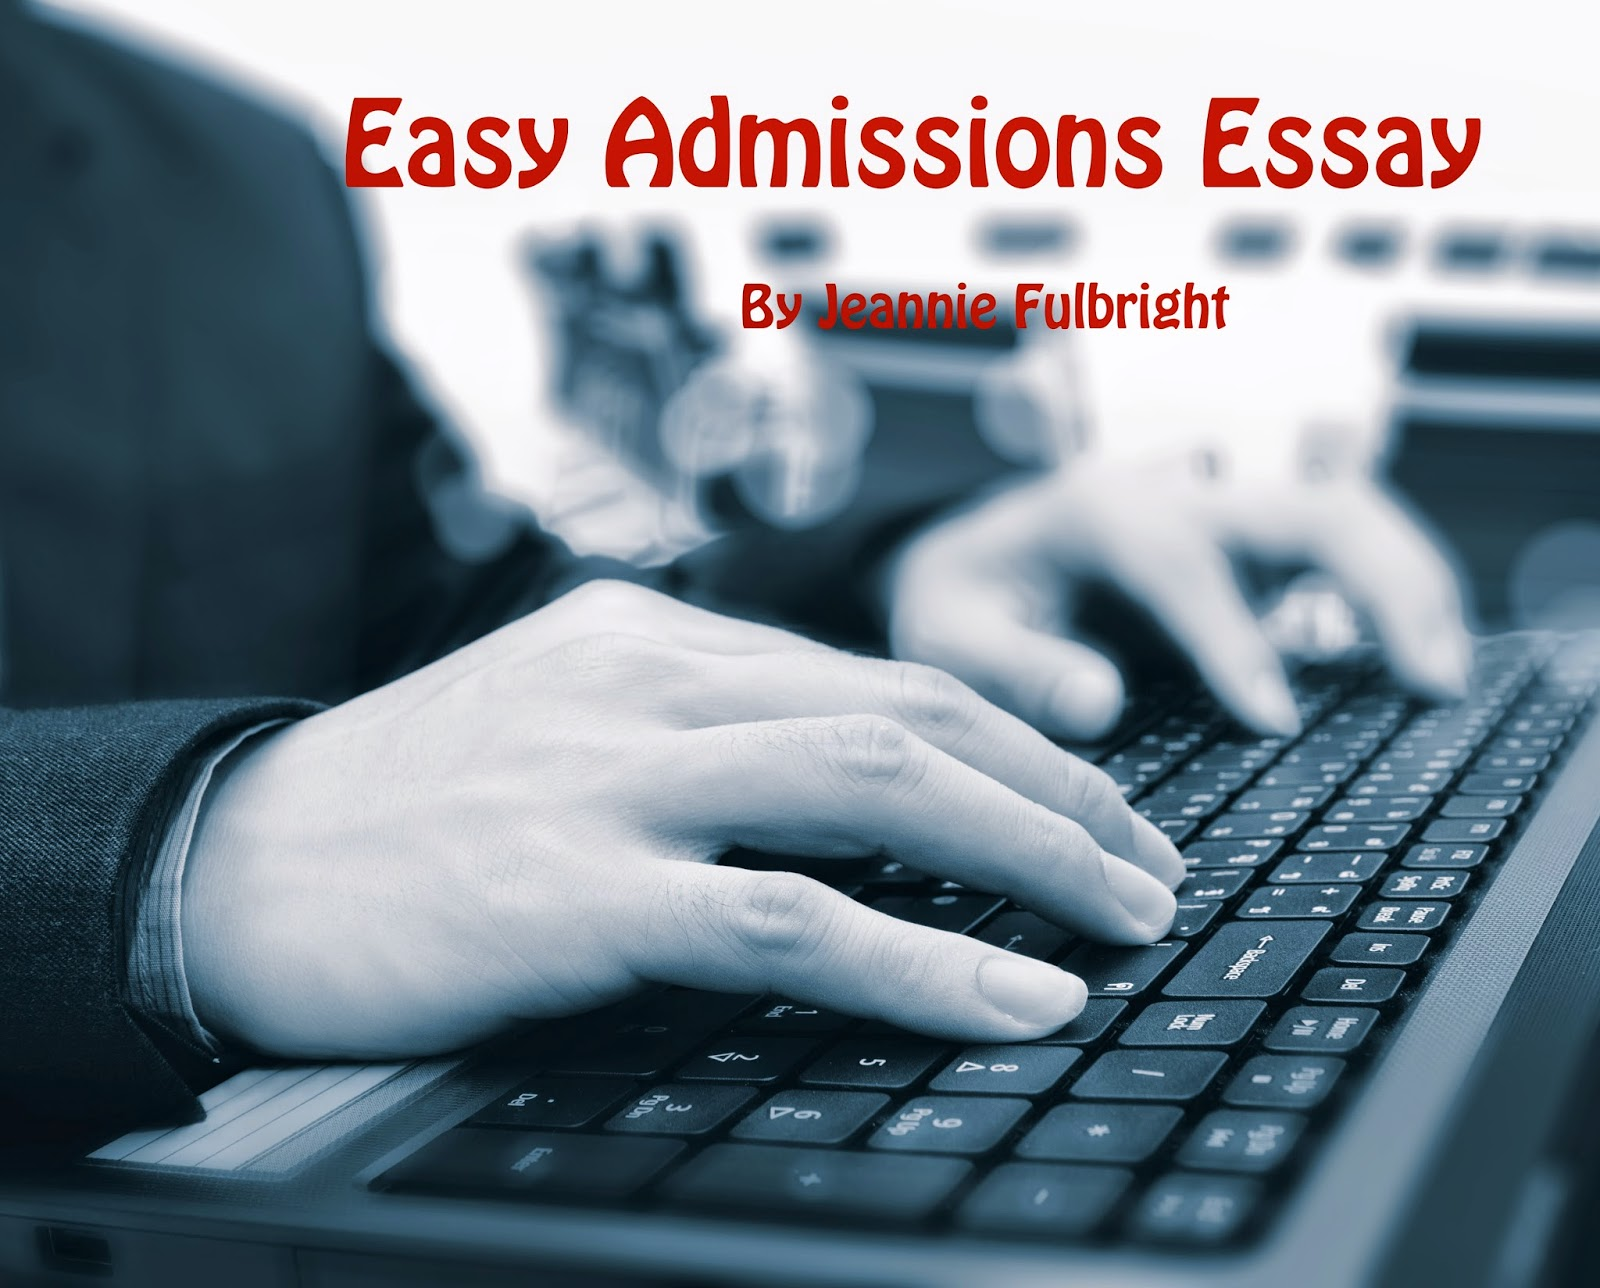 crash essays film essay underline jeannie fulbright college crash  jeannie fulbright college crash course part easy admissions no matter what anyone tells you the essay